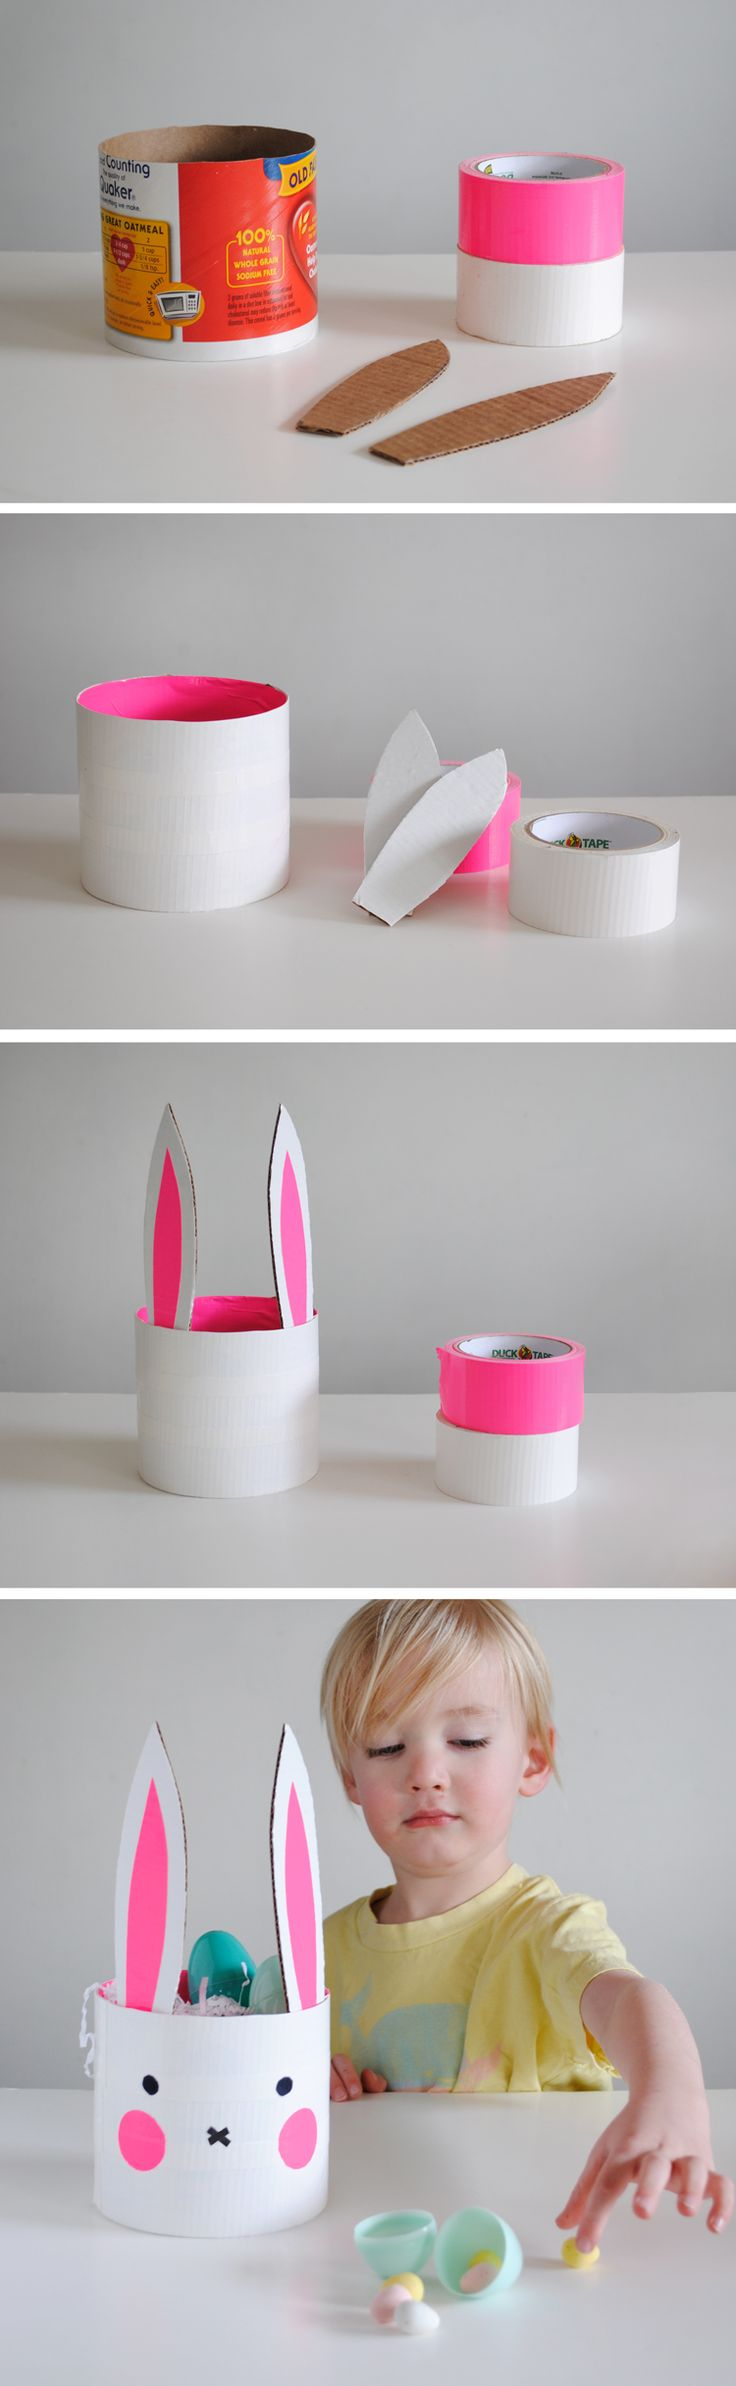 Bunny basket DIY with duct tape (would be cute with other animal ears as well) for easter or gift basket in general